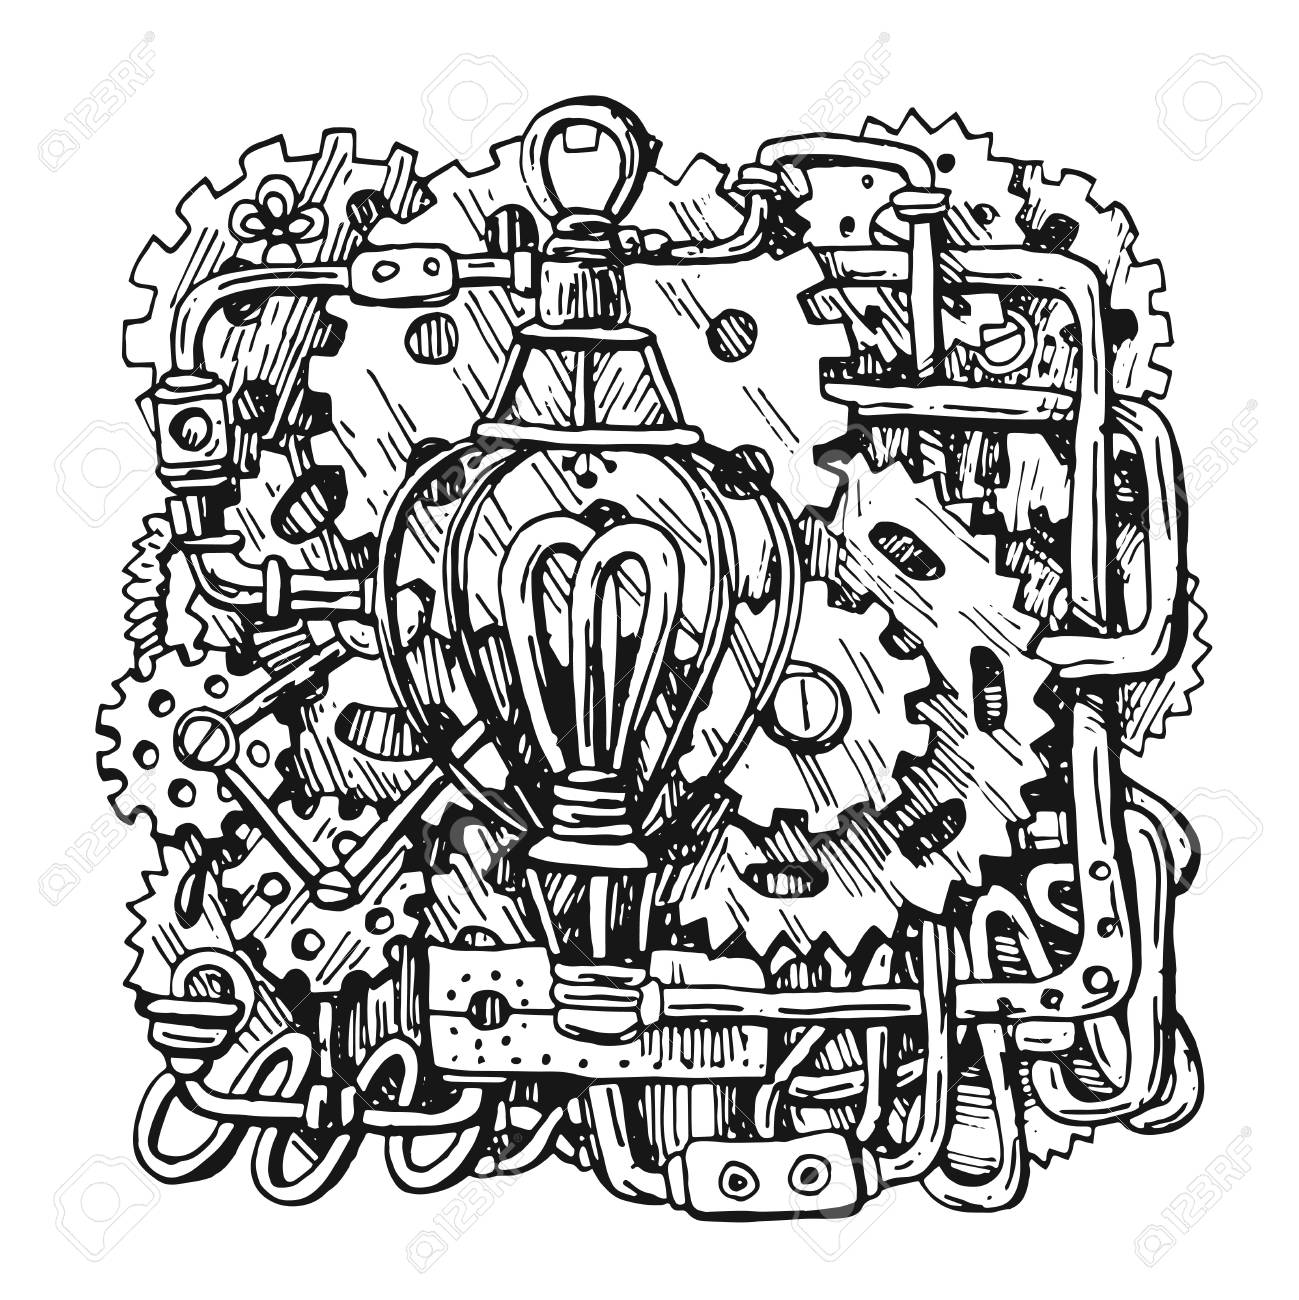 Steampunk Style Drawing Stock Photo Picture And Royalty Free Image Image 102392220